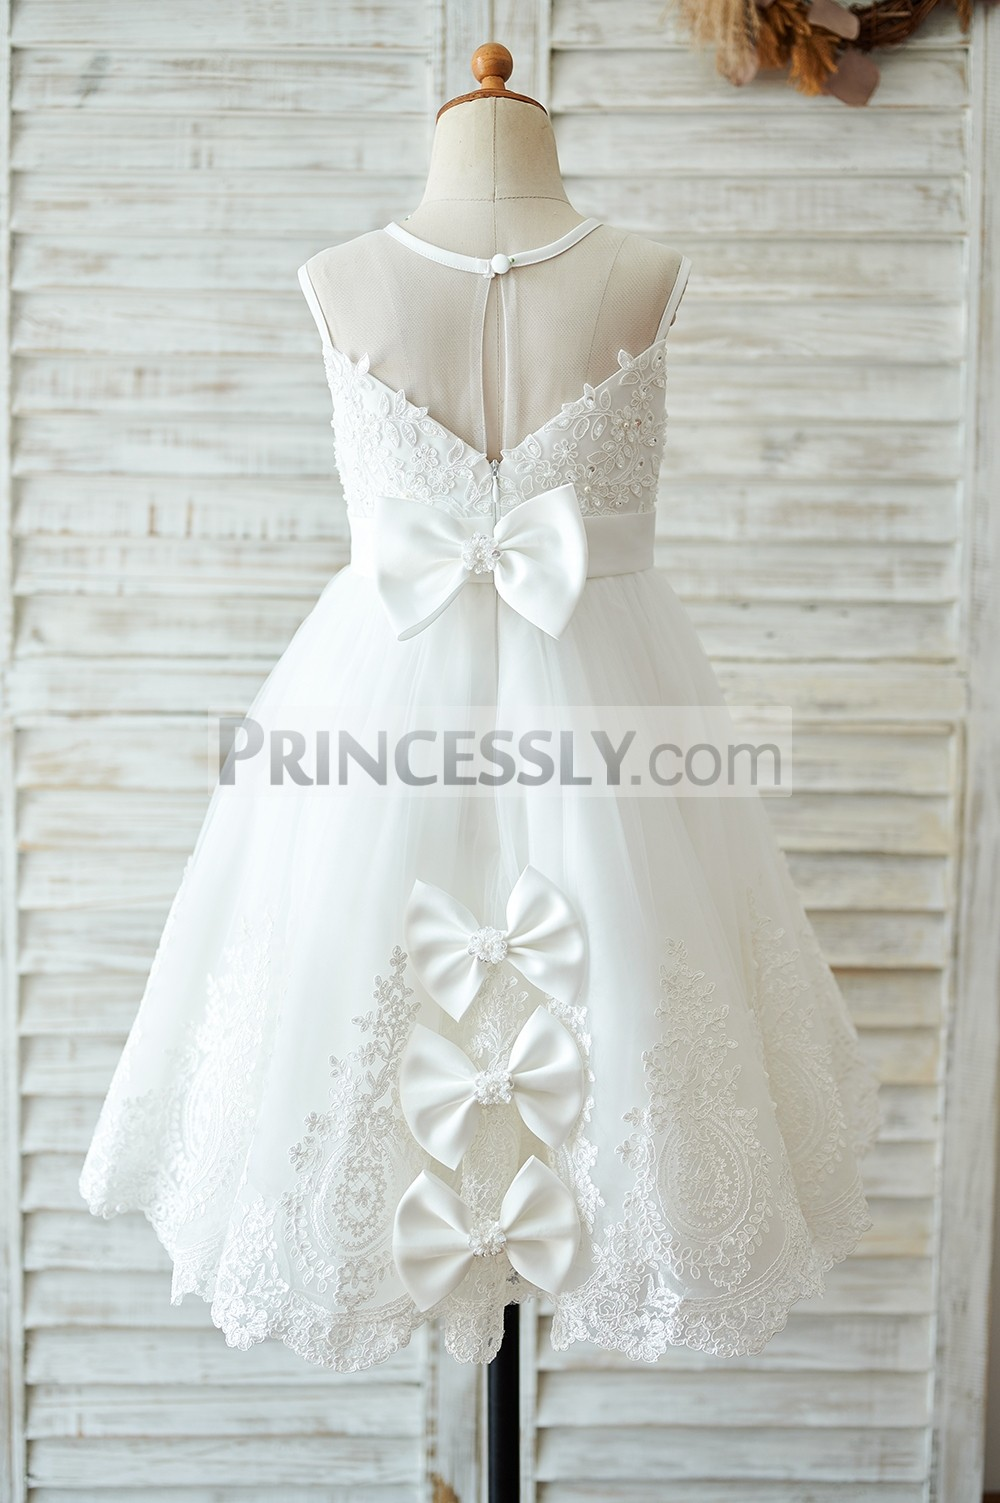 Ivory wedding baby girl dress with bows